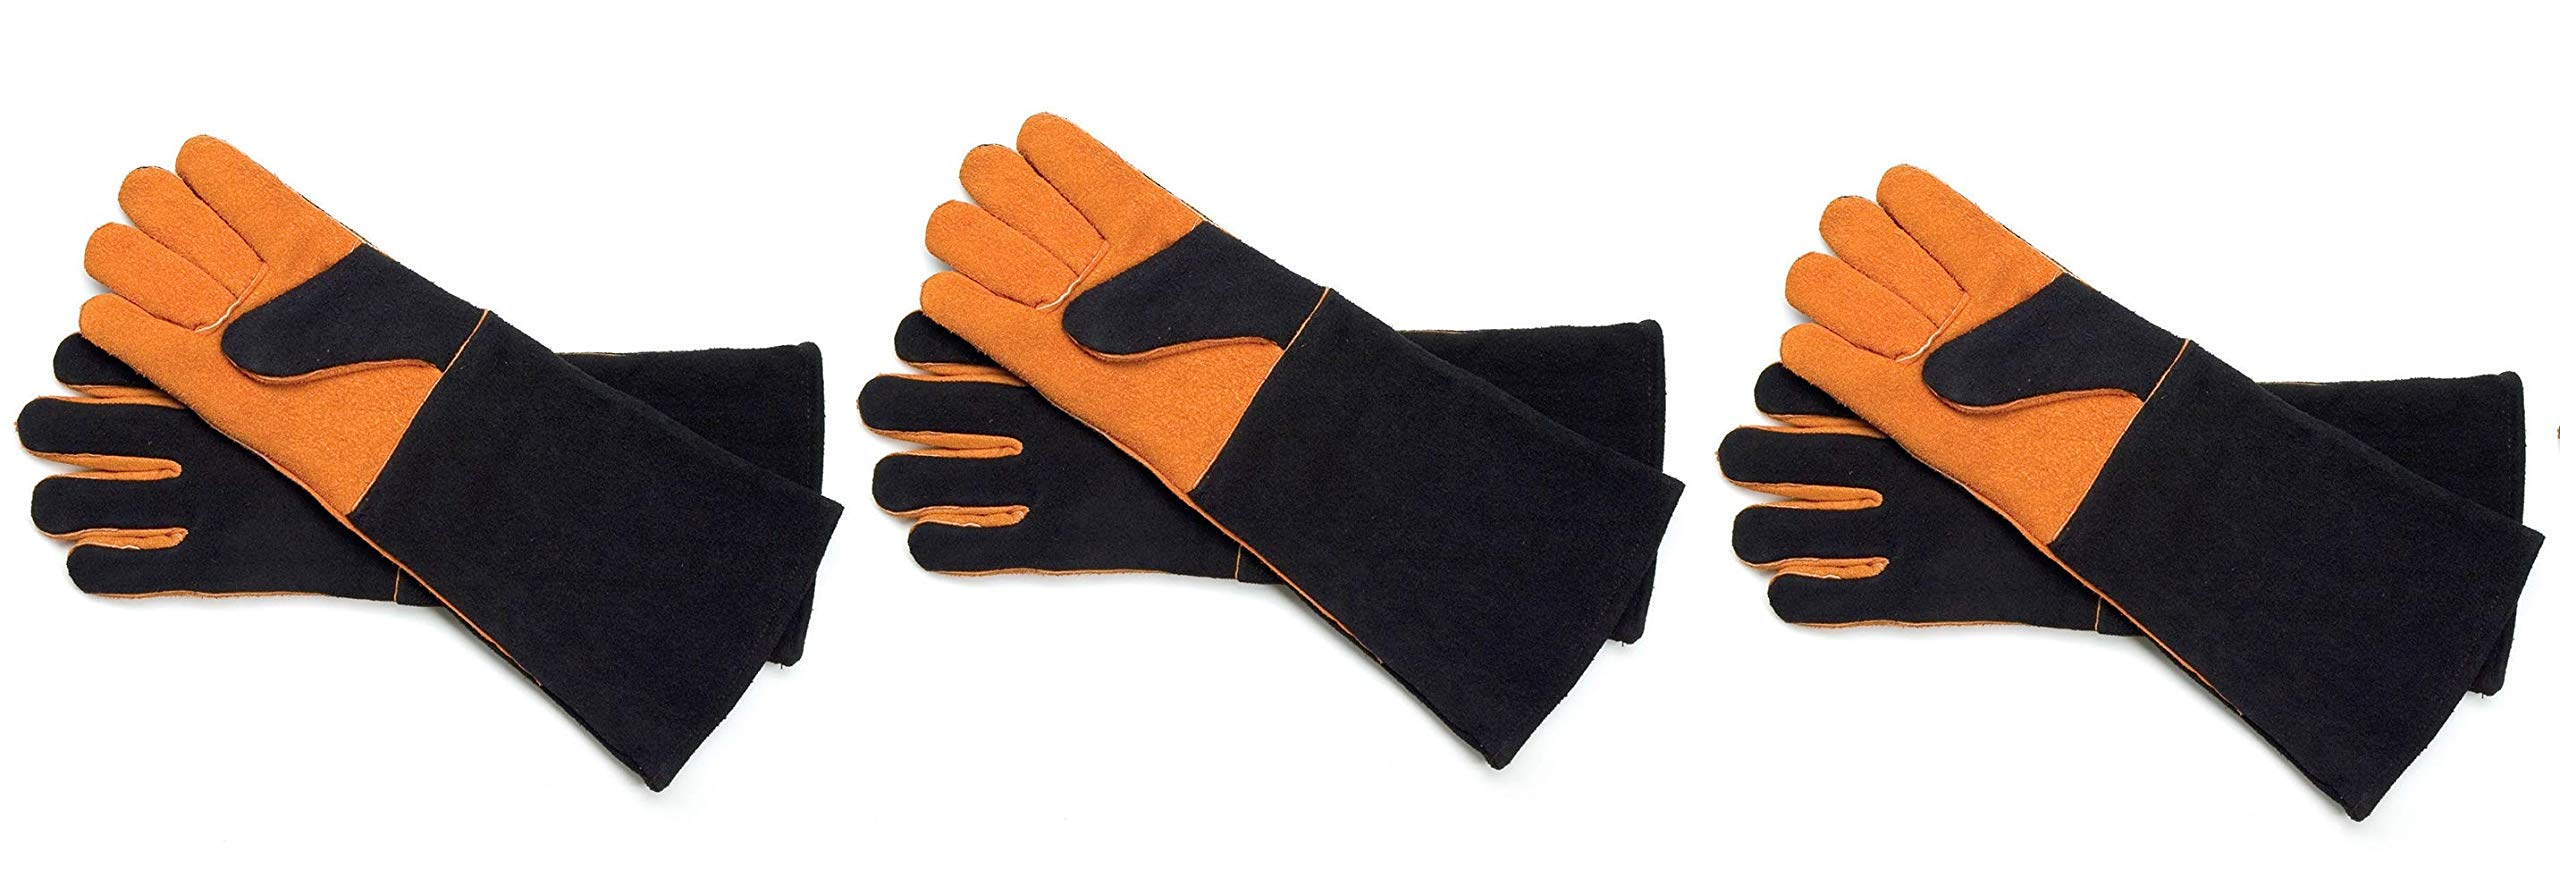 Steven Raichlen Best of Barbecue Extra Long Suede Grill Gloves (Pair) - SR8038 (Тhree Pаck)